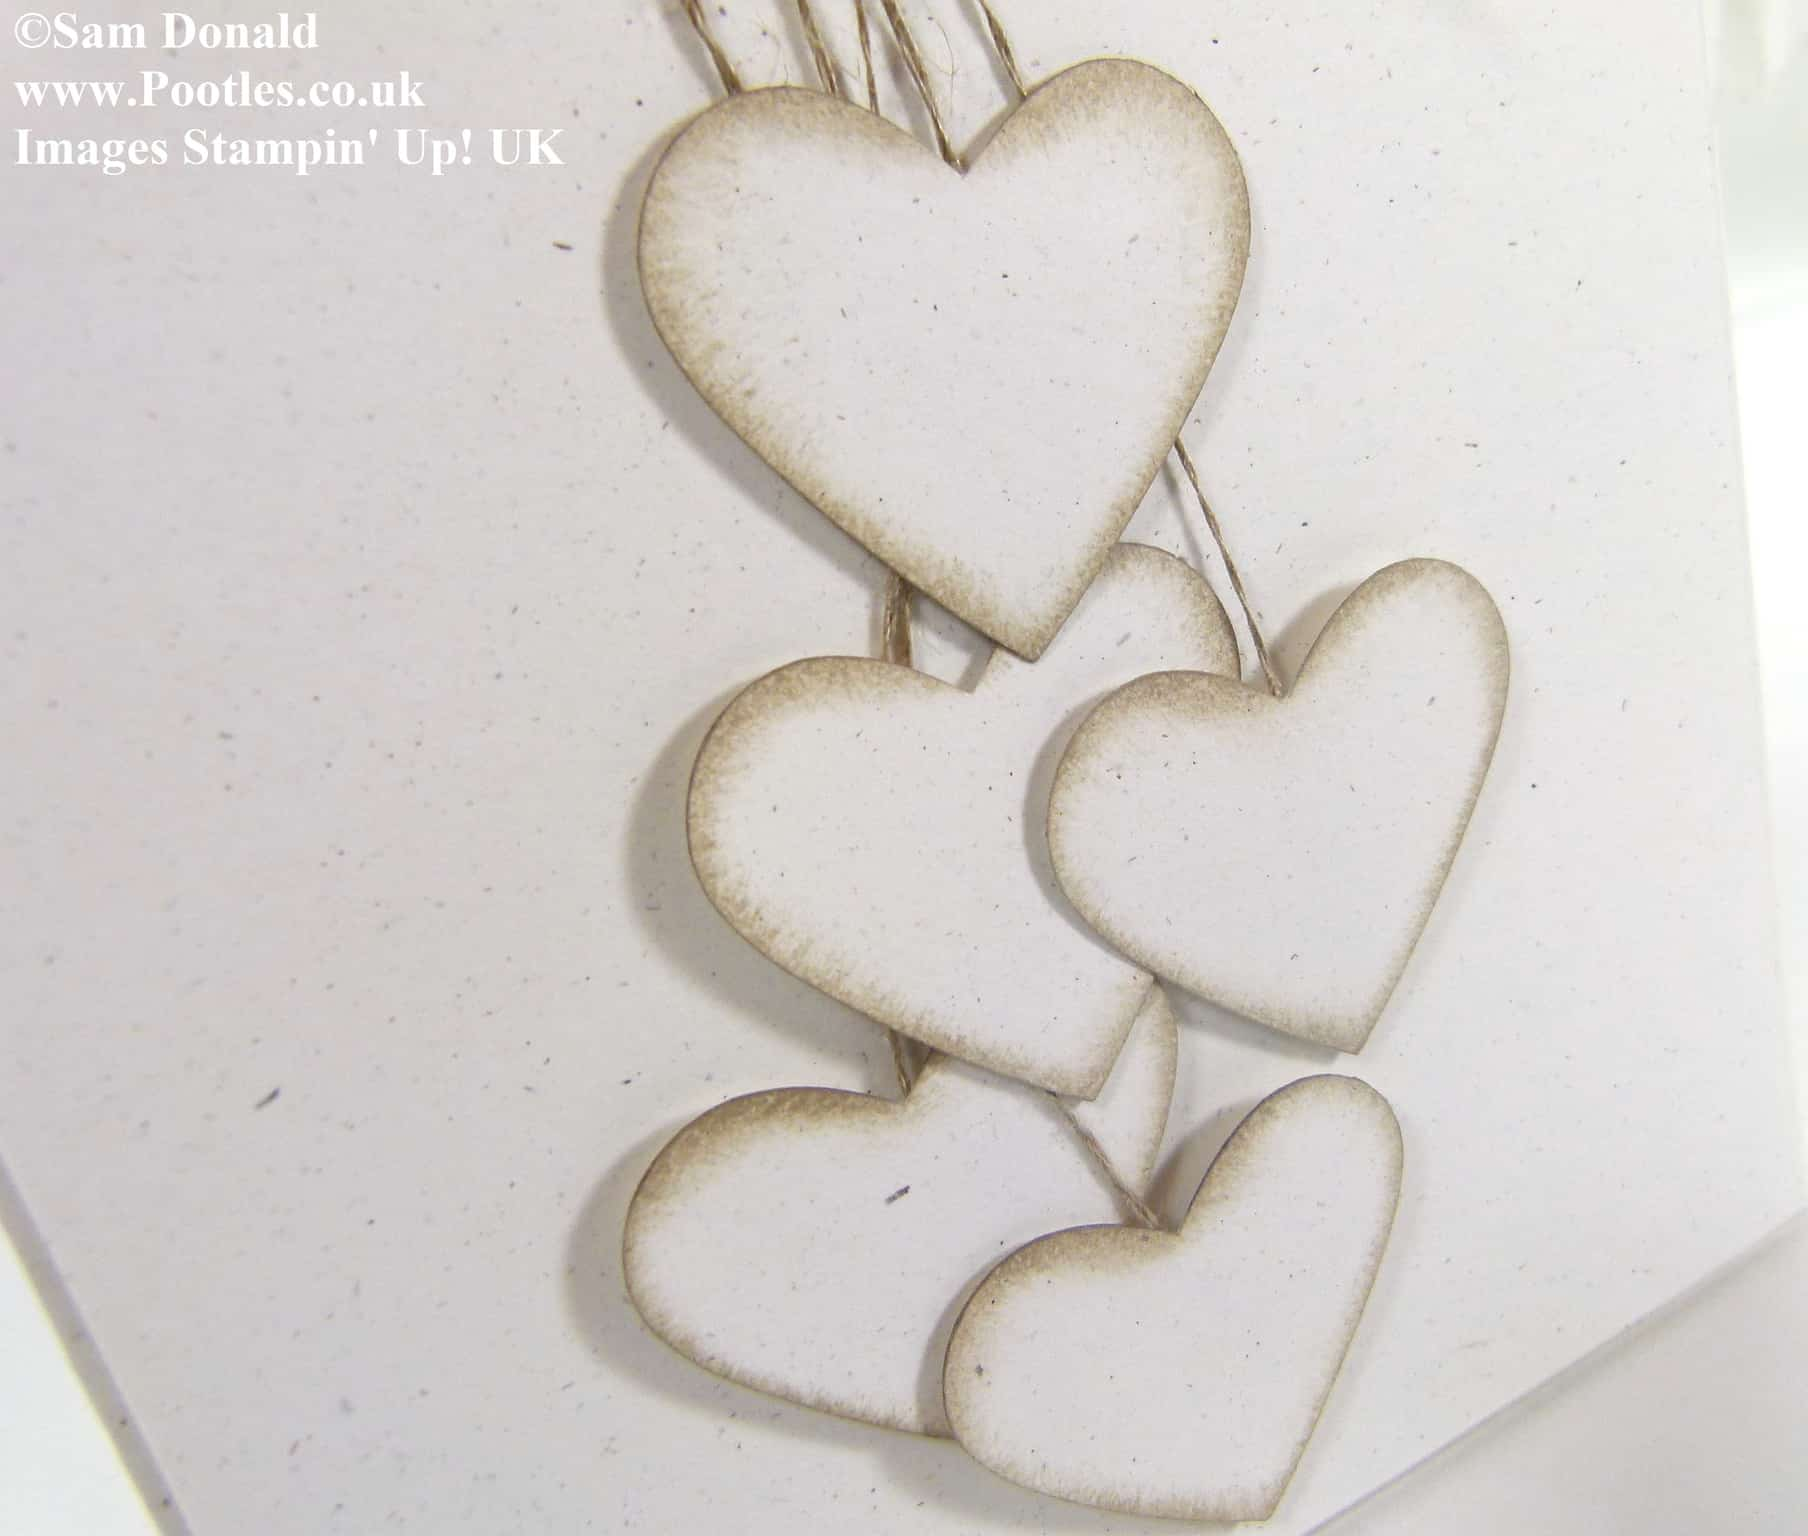 POOTLES Stampin Up UK Extra Large Inspired Hearts 2